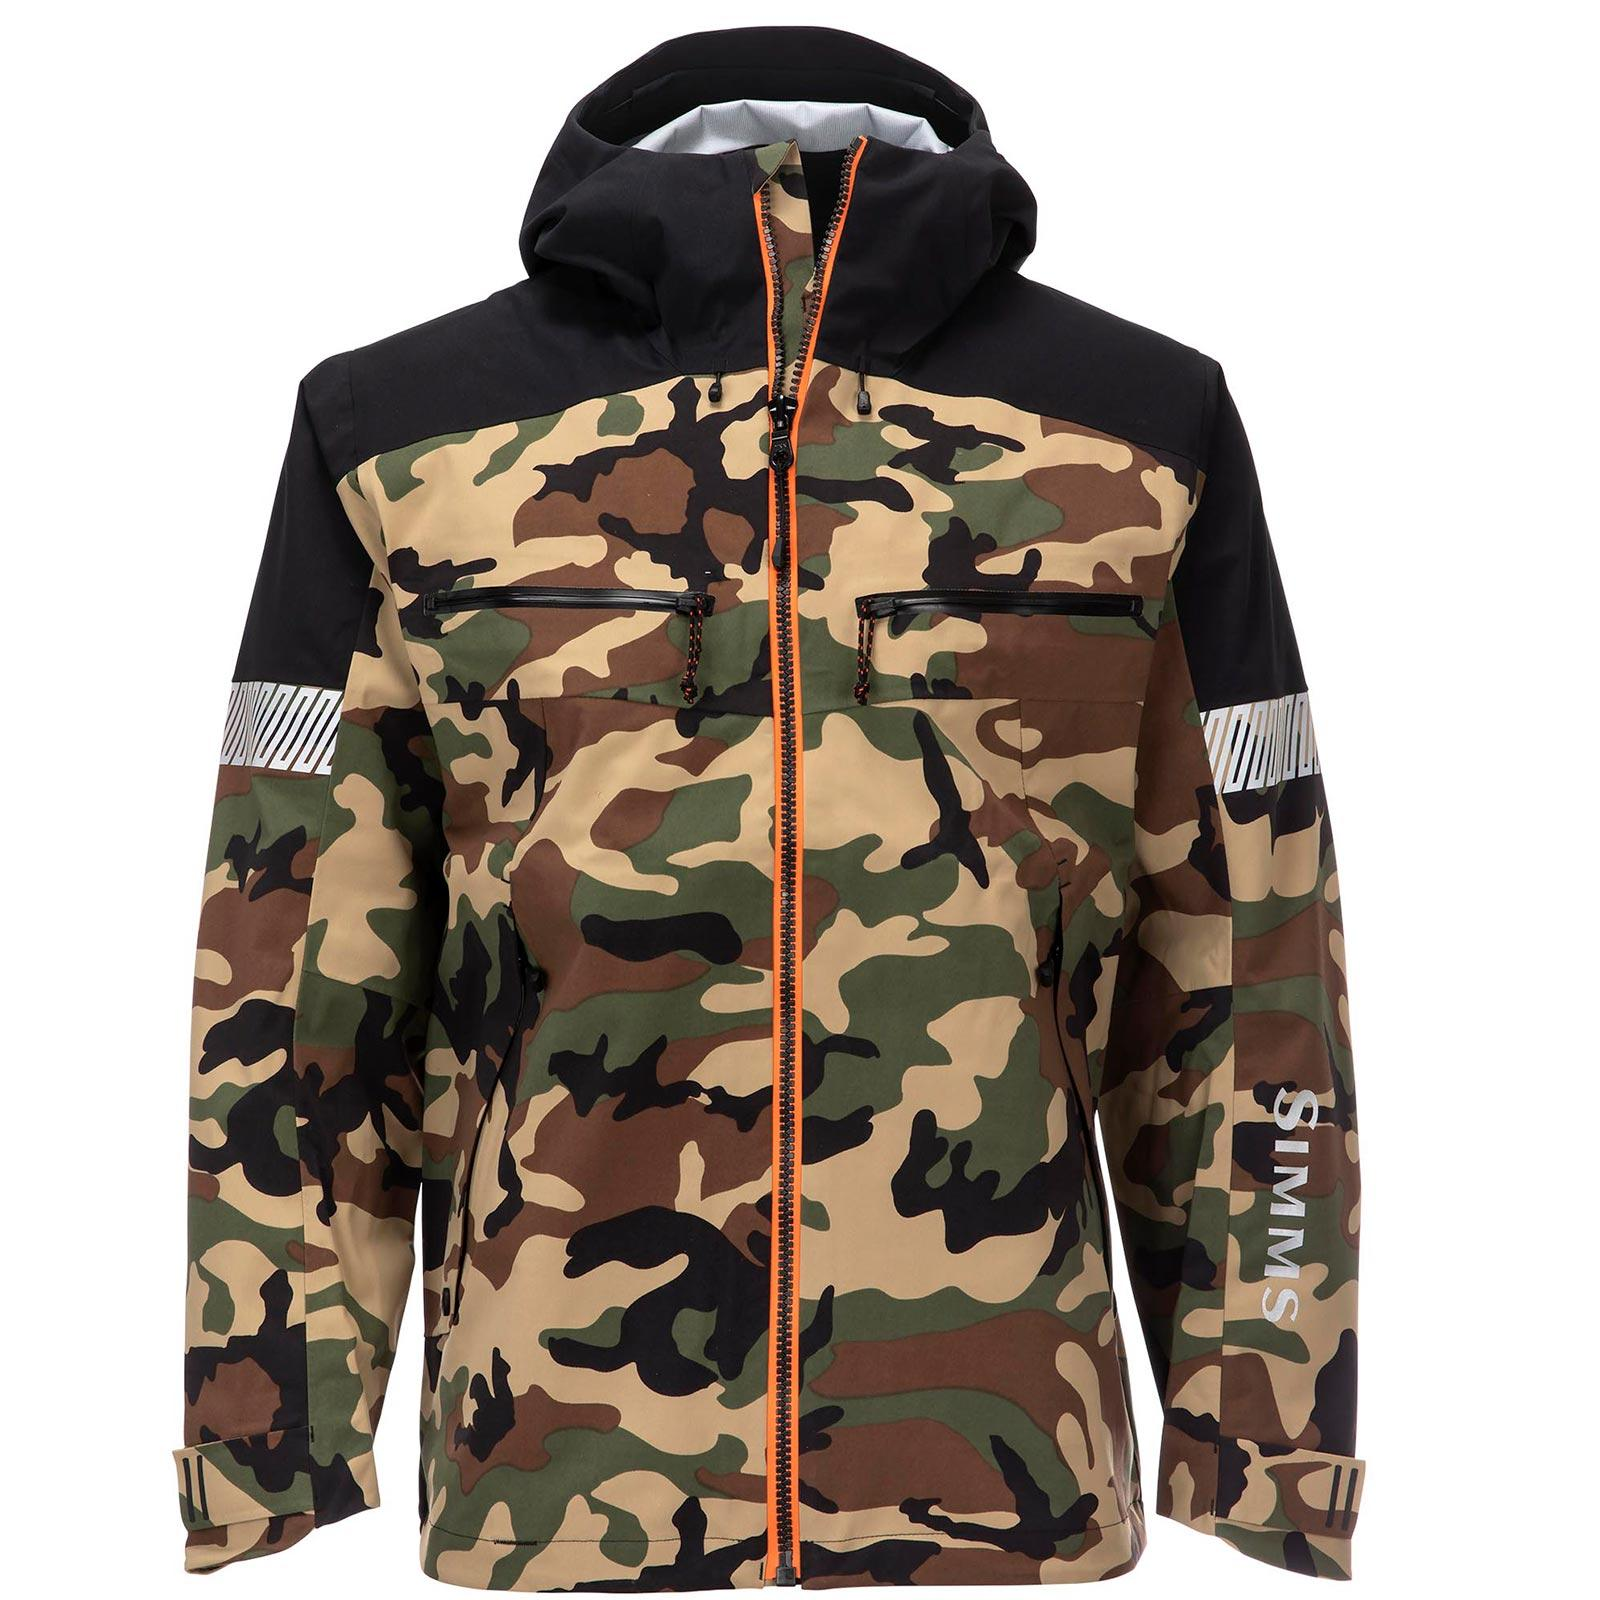 Simms Men's CX Jacket Woodland Camo